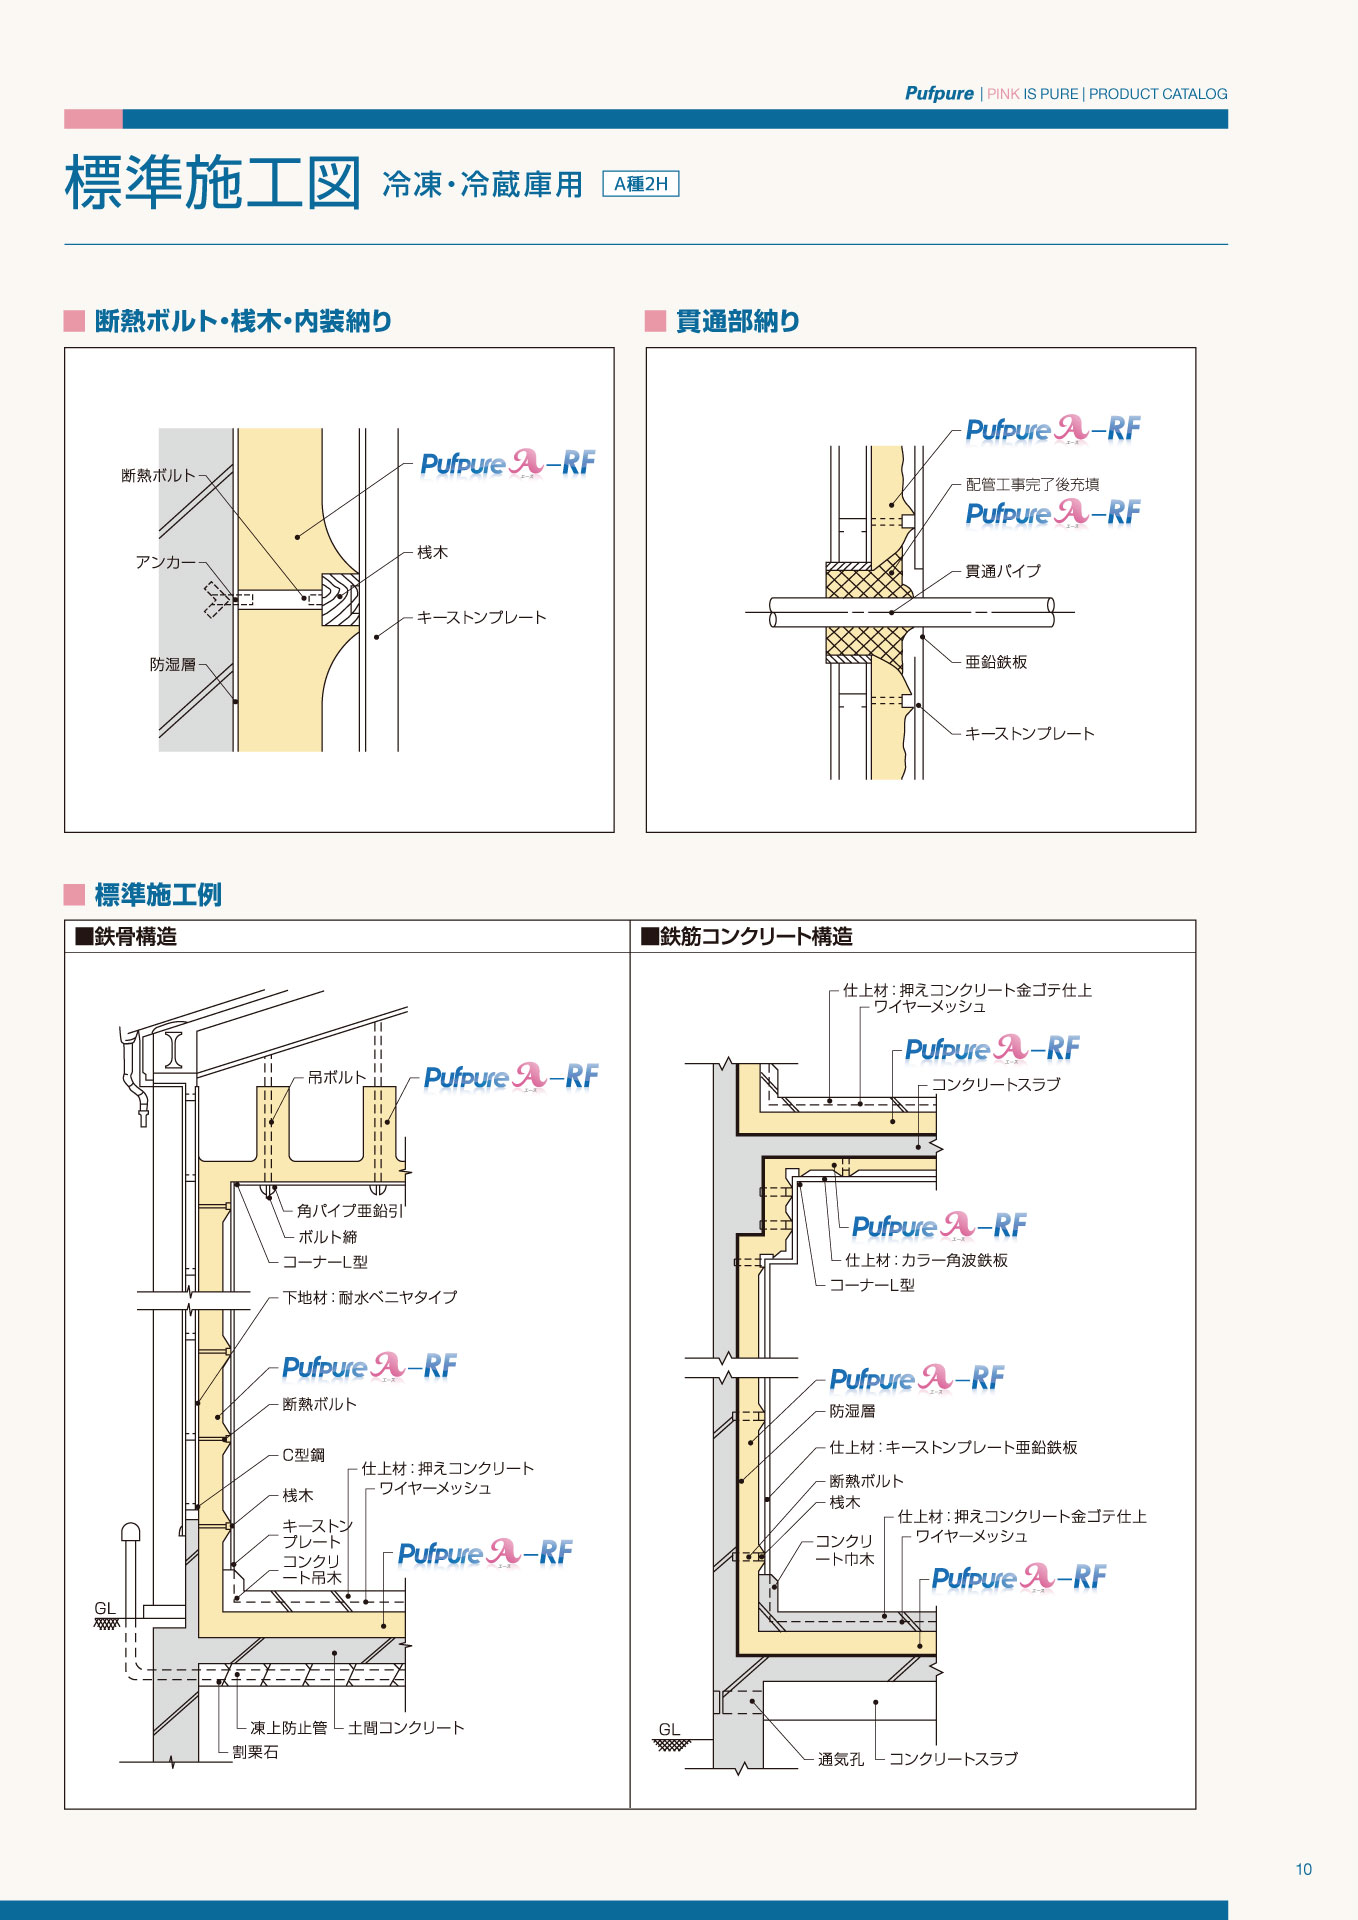 Thumbnail of http://建築物ノンフロン専用総合カタログP11